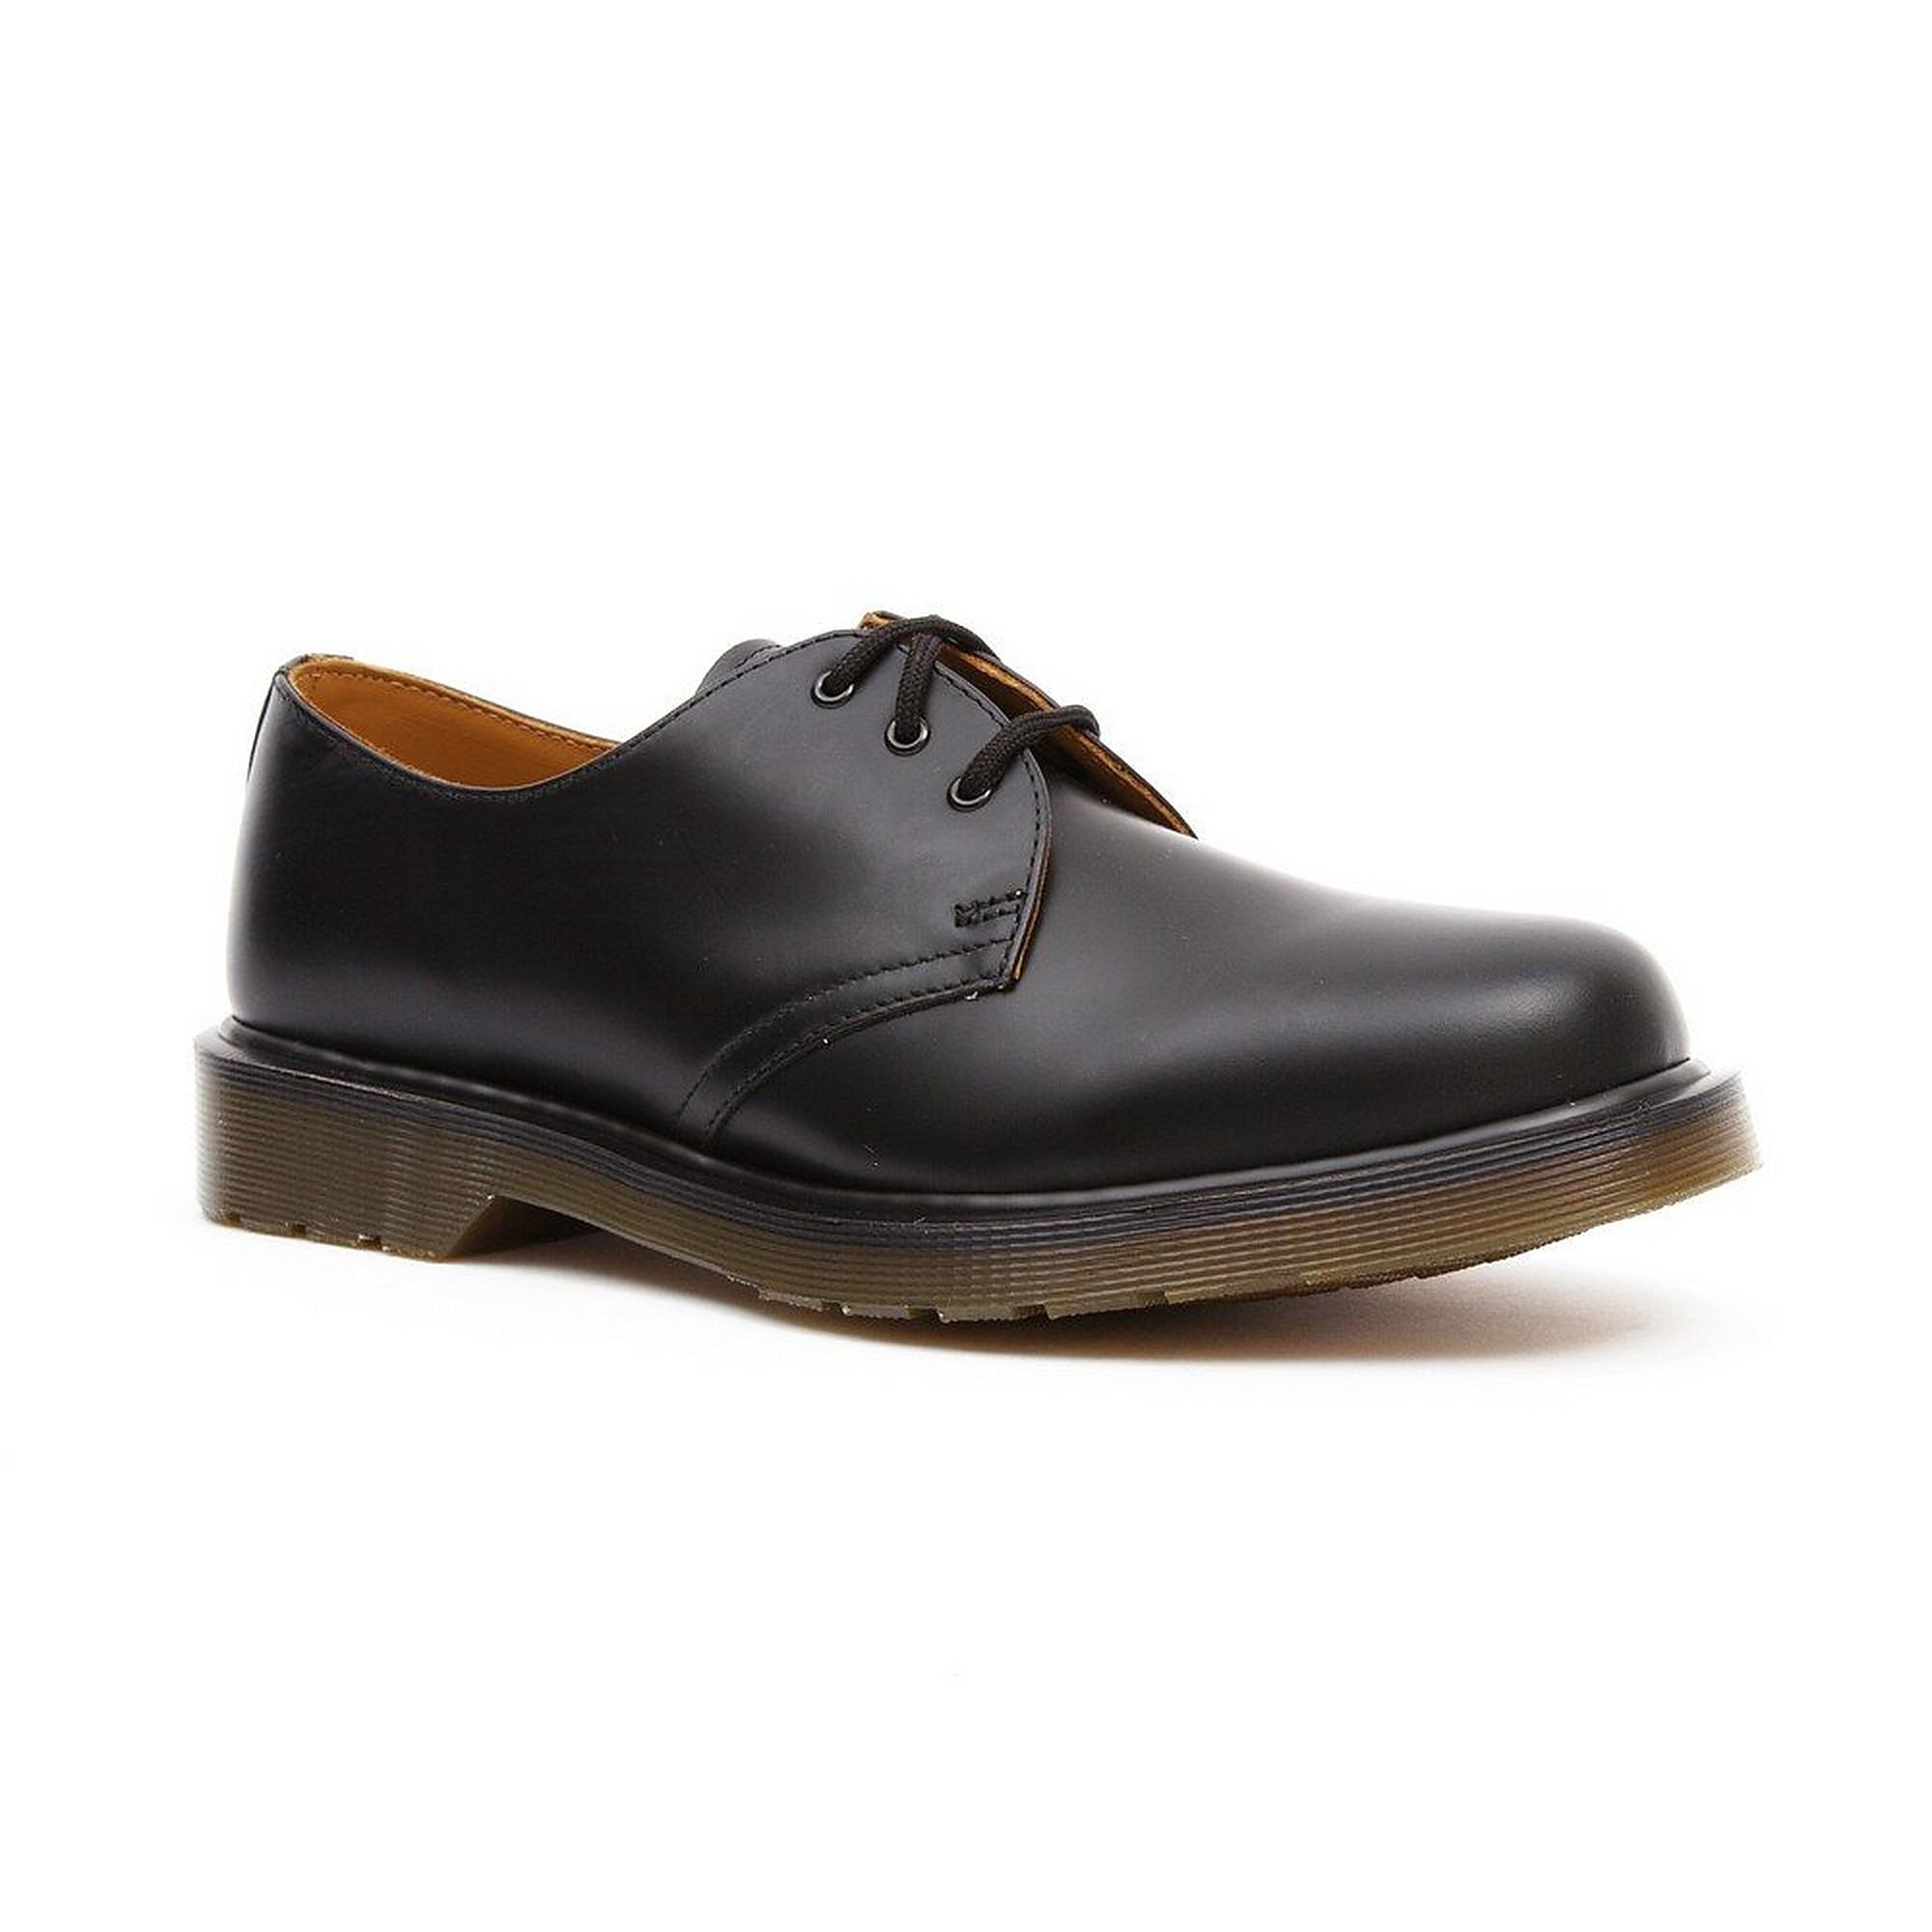 Dr Martens Mens Gibson 1461-9 Leather Shoes - Smooth Black